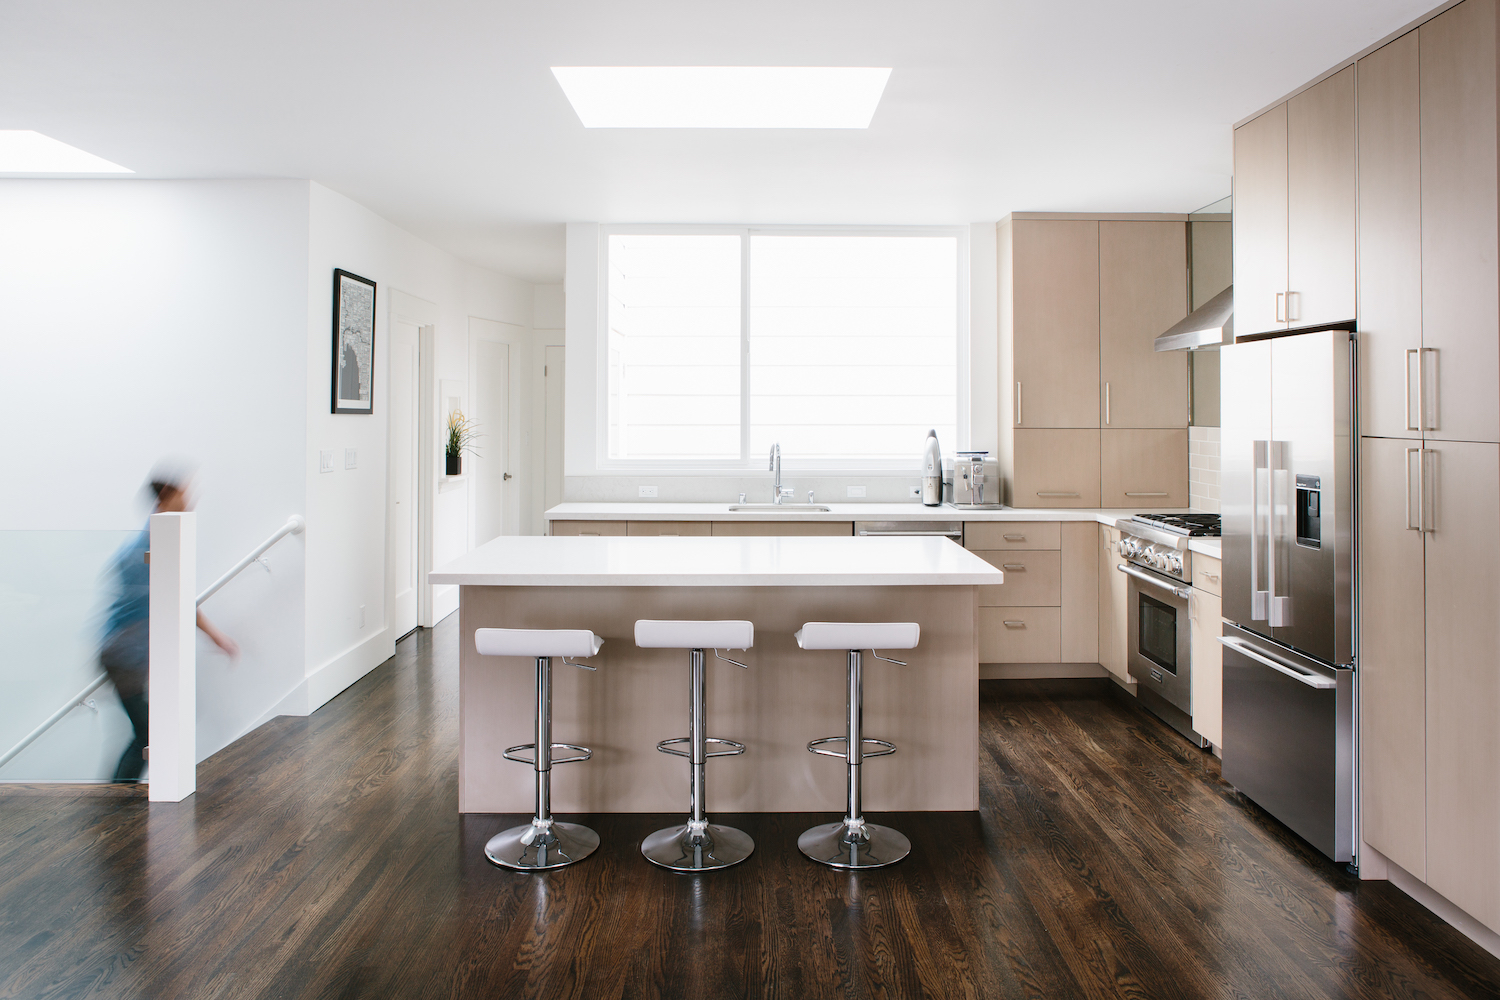 kitchen with light wood cabinets and wood flooring and center island and white counters and bar seating and chrome fixtures.jpg